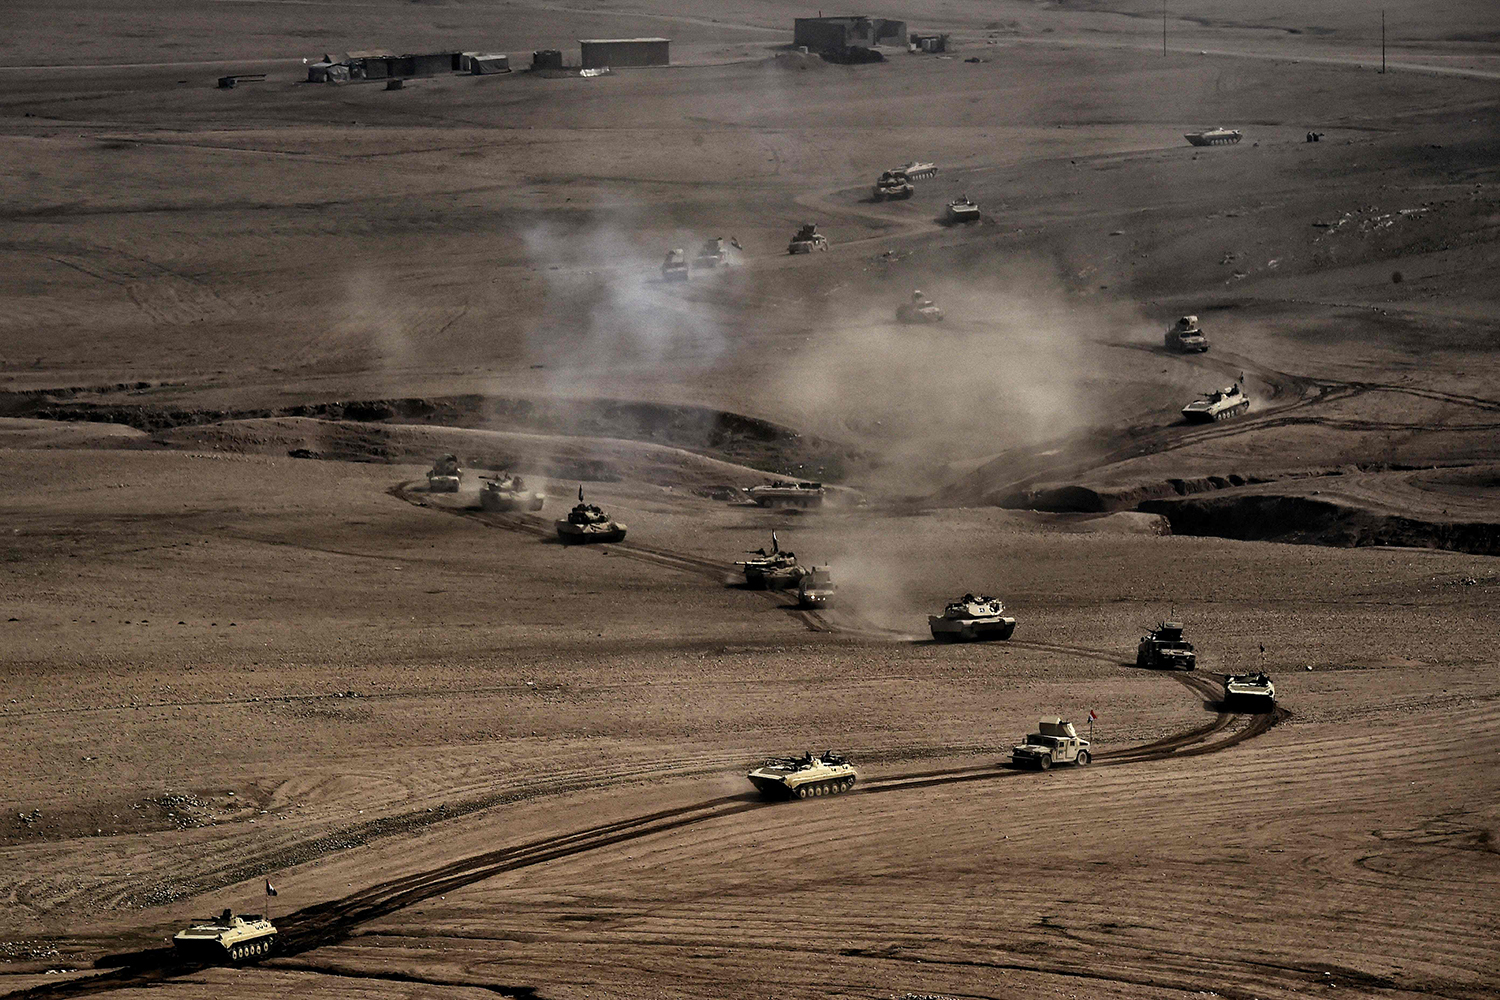 TOPSHOT - A convoy of tanks and armoured vehicles of the Iraqi army's 34th brigade advances near Talul al-Atshana, on the southwestern outskirts of Mosul, on February 27, 2017, during an offensive to retake the city from Islamic State (IS) group fighters. / AFP PHOTO / ARIS MESSINIS / TT / kod 444